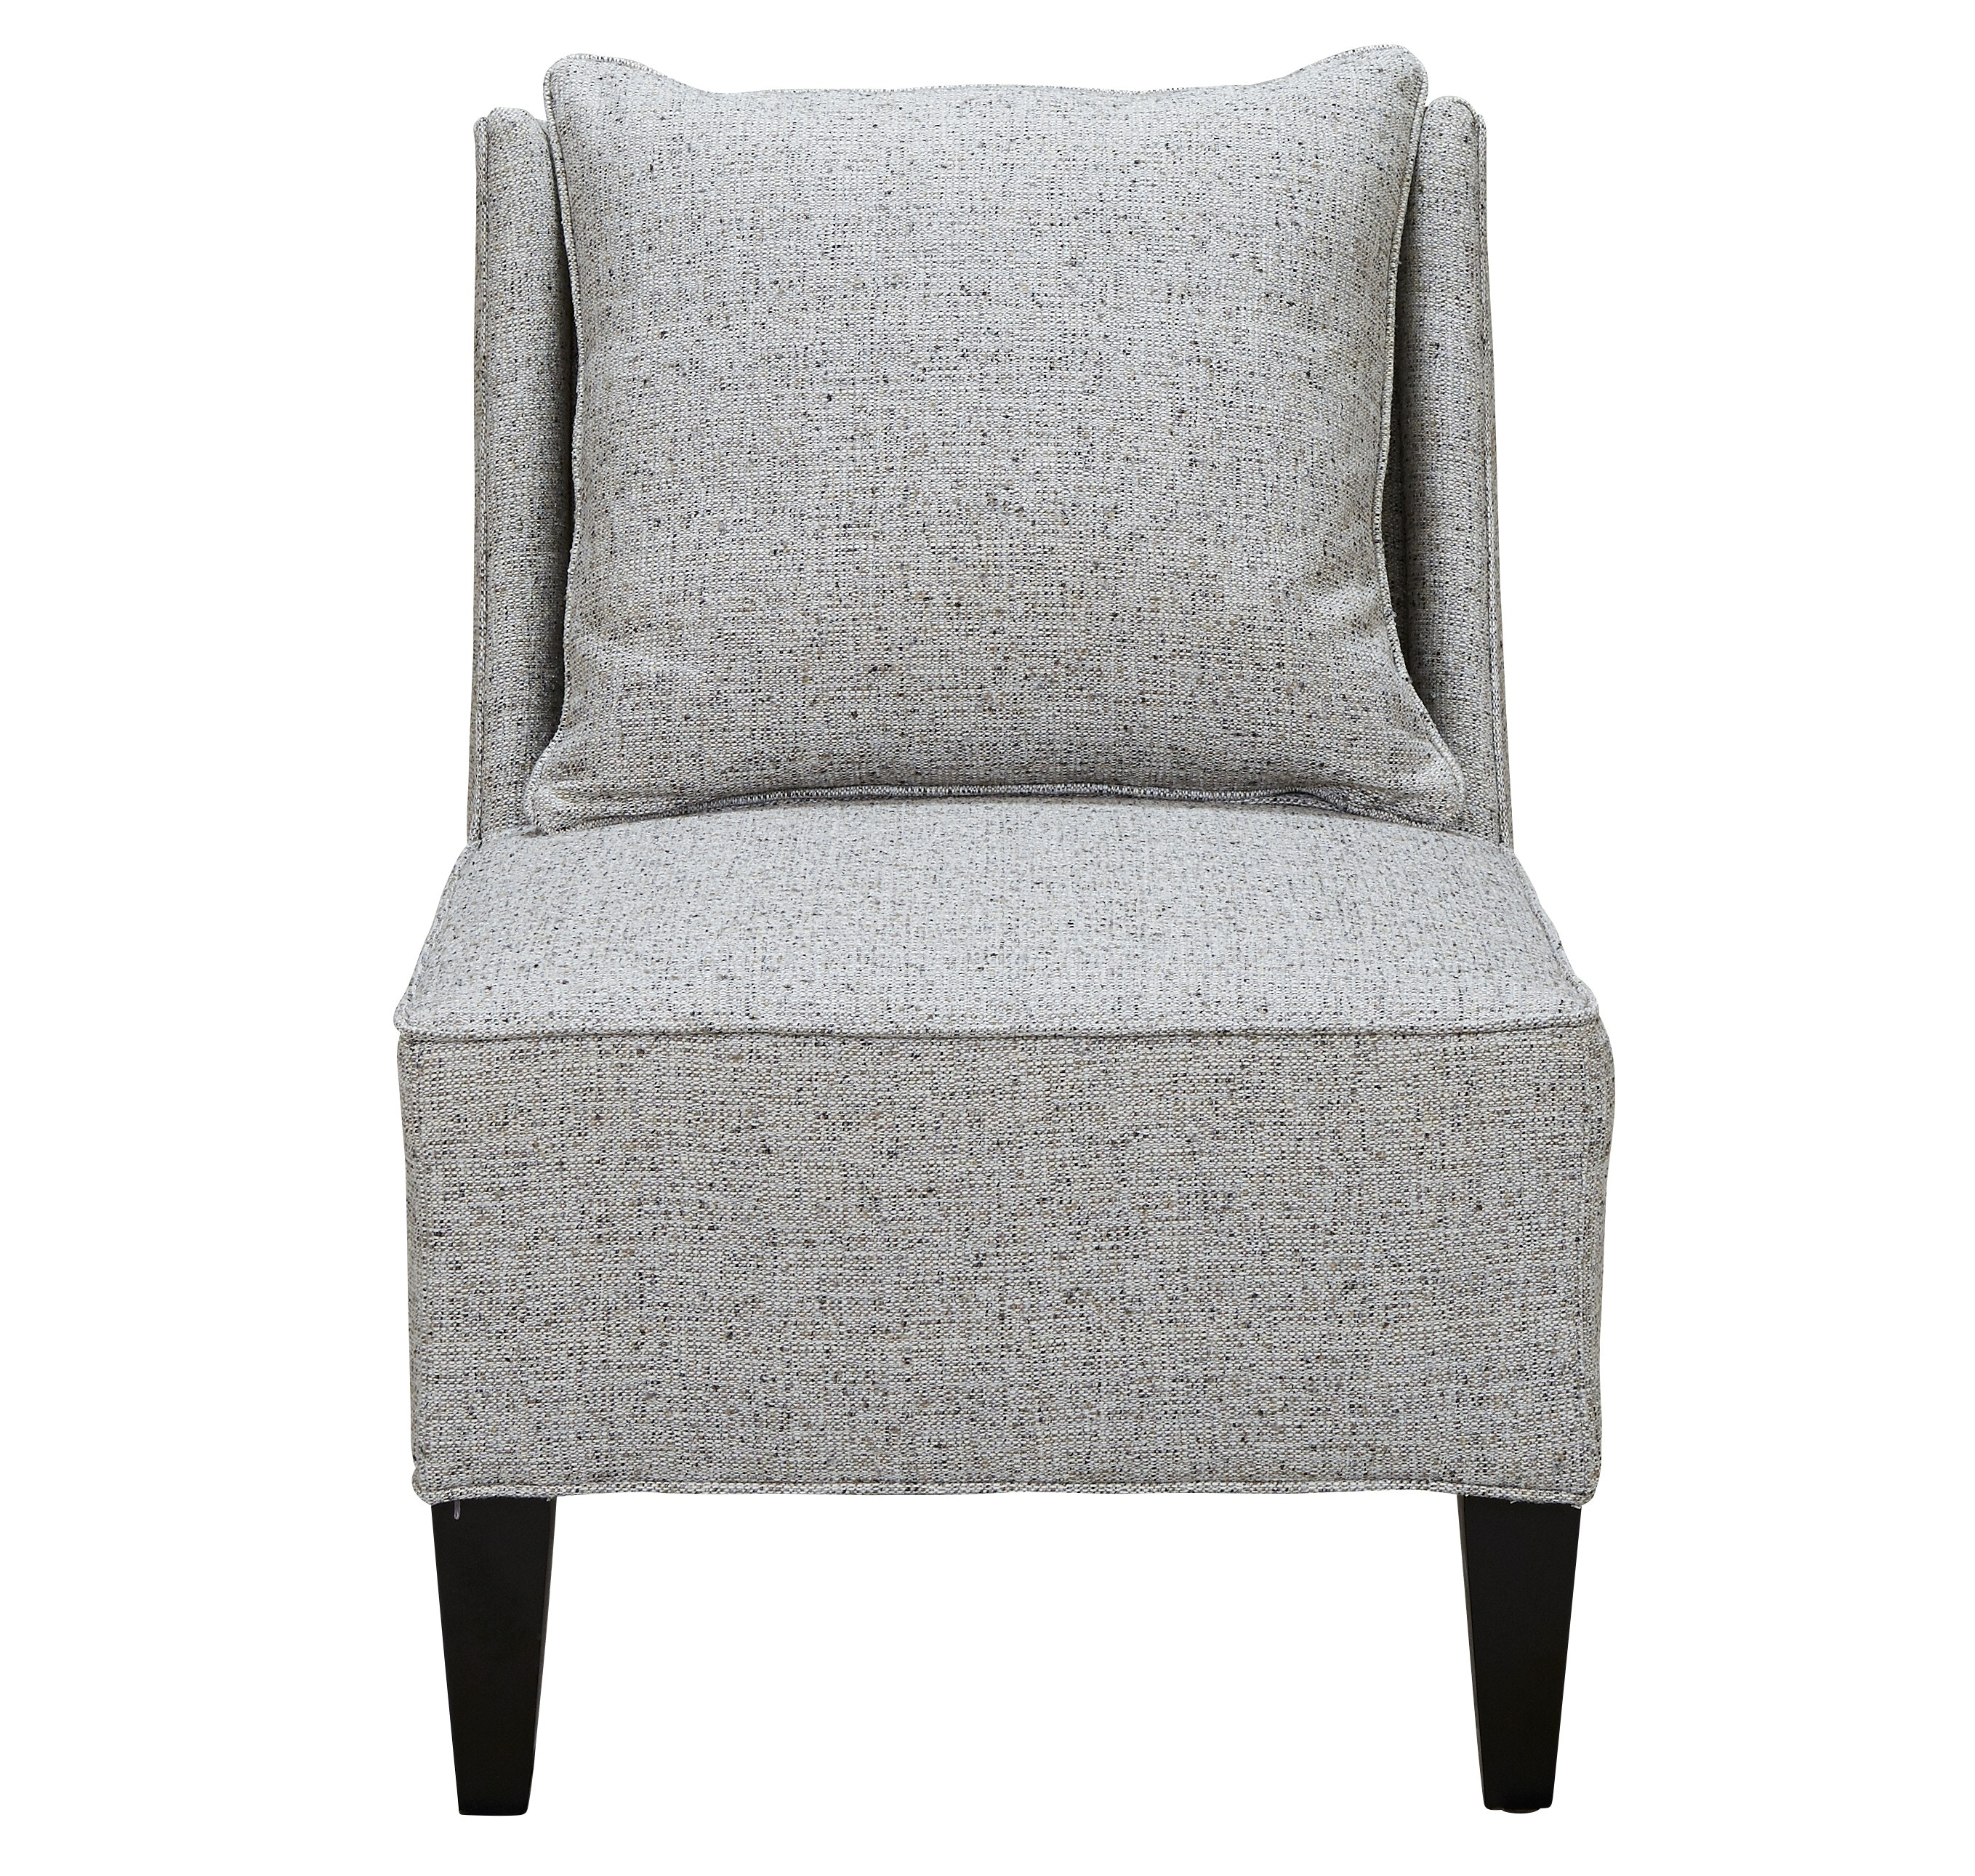 Wes 1 Garland Slipper Chair 76013 From Walter E. Smithe Furniture + Design